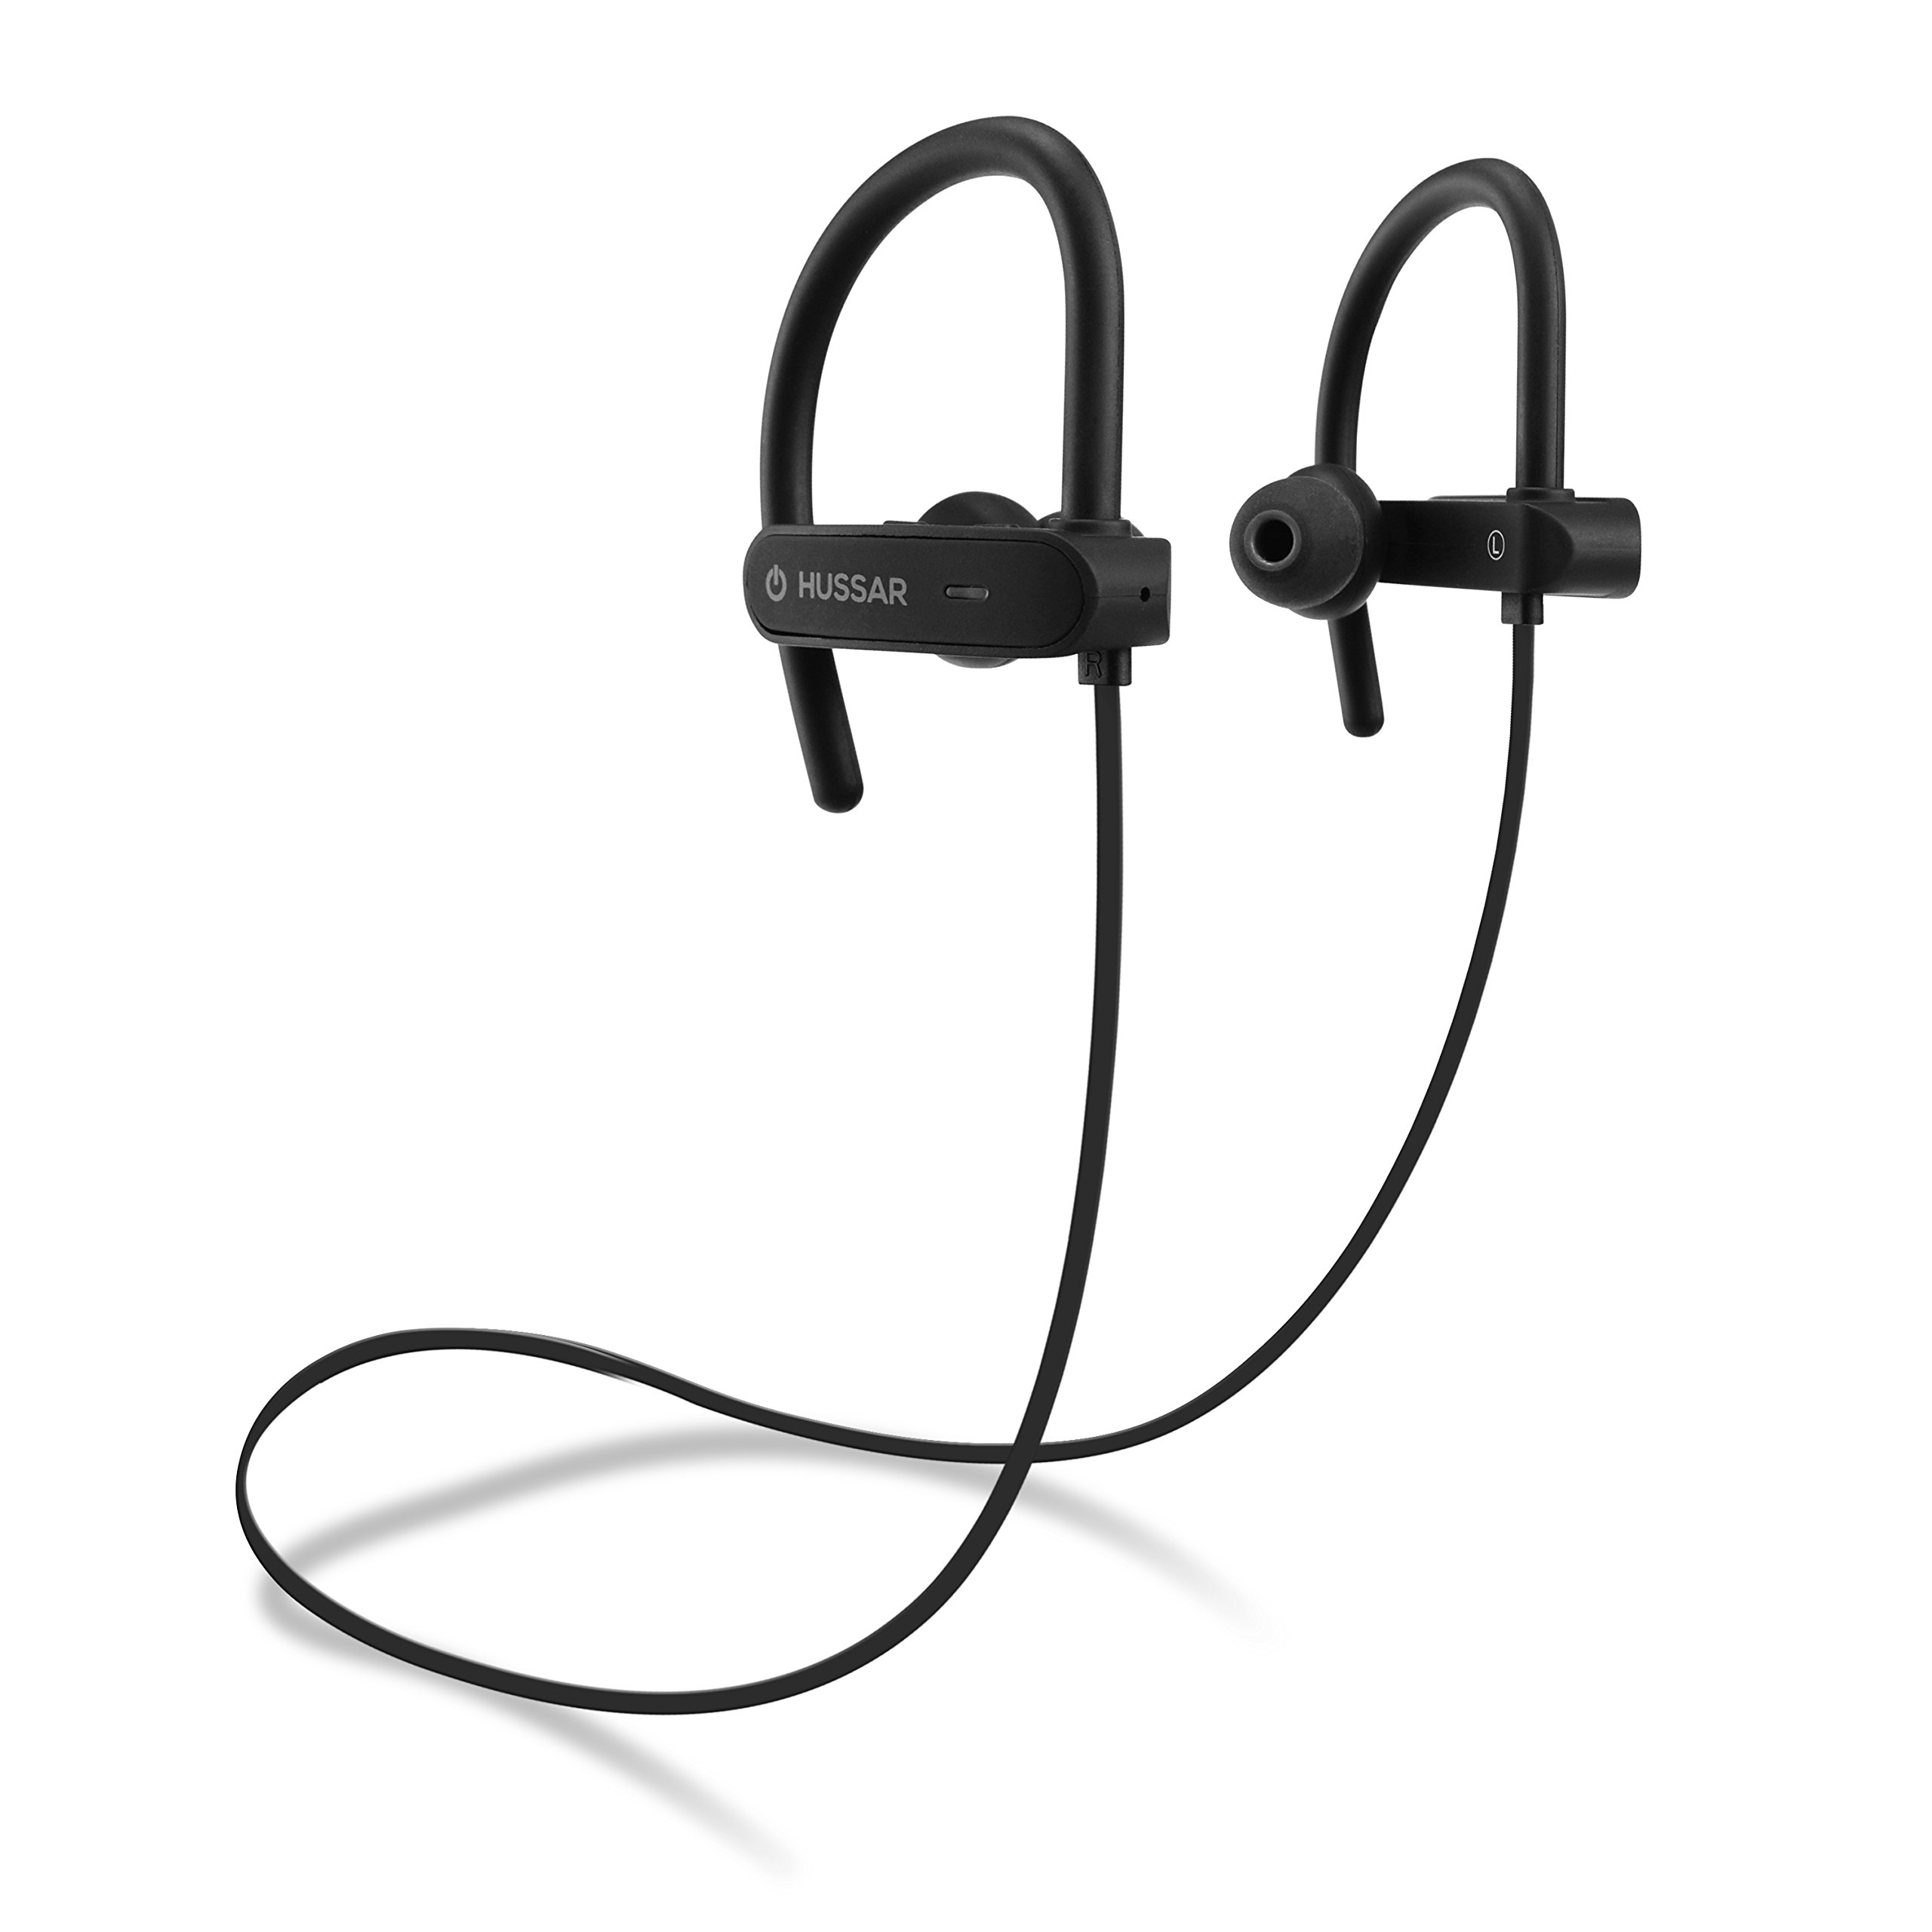 Husssar Magicbuds Bluetooth Headphones, Durable IPX7 Waterproof Sports Earphones w/Mic, HD Sound w/Bass, Secure Comfort Fit Earbuds for Running, Noise Cancelling Sweatproof Headsets, 8 hrs playtime